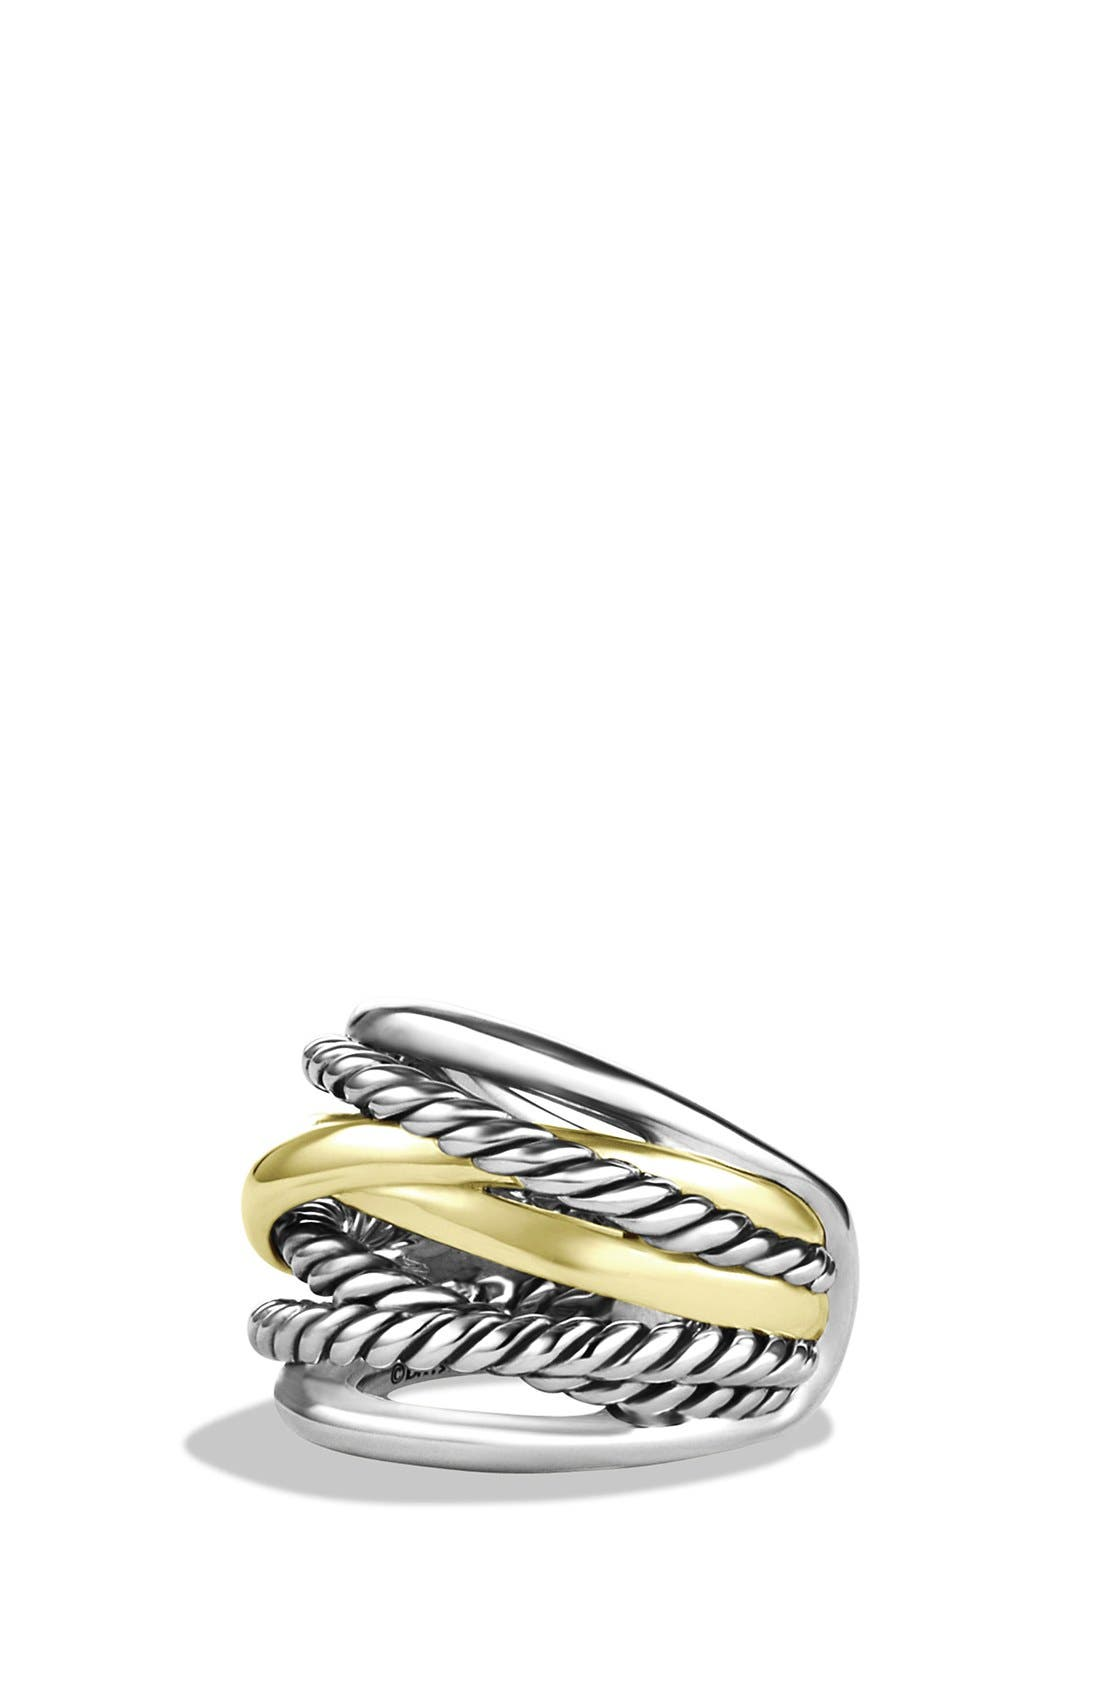 'Crossover' Wide Ring with Gold,                             Main thumbnail 1, color,                             STERLING SILVER/ 14K GOLD